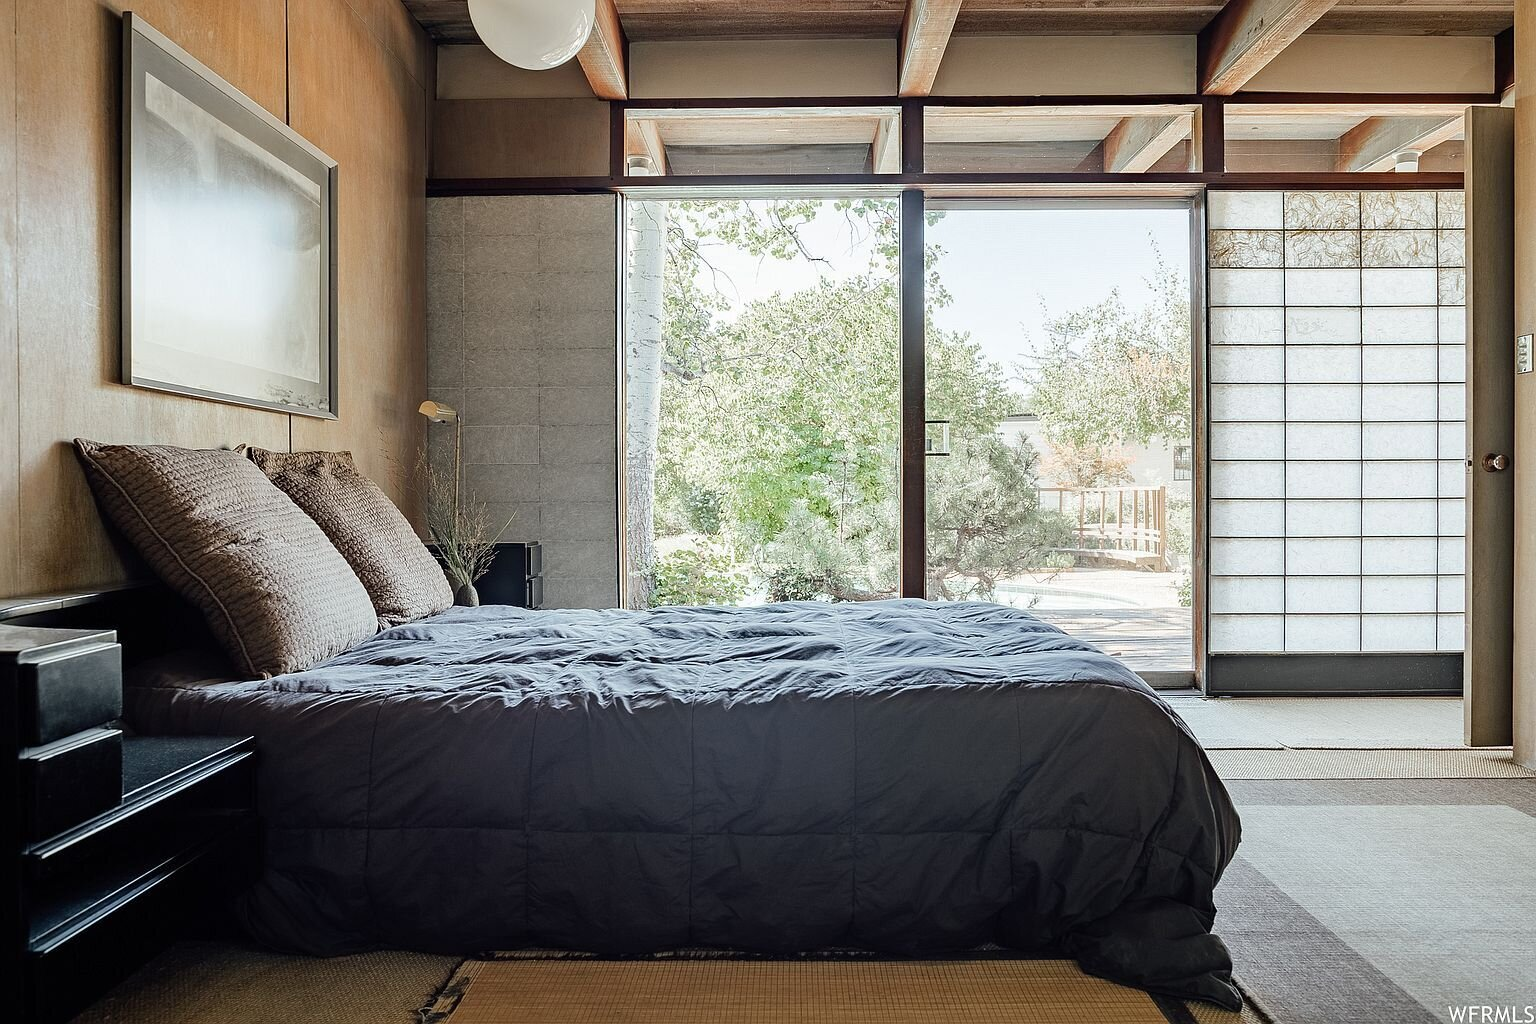 Another view of the bedroom shows more of the screens along the window wall.  Photo 10 of 18 in This Tranquil, Japanese-Inspired Midcentury Home Asks $1.2M